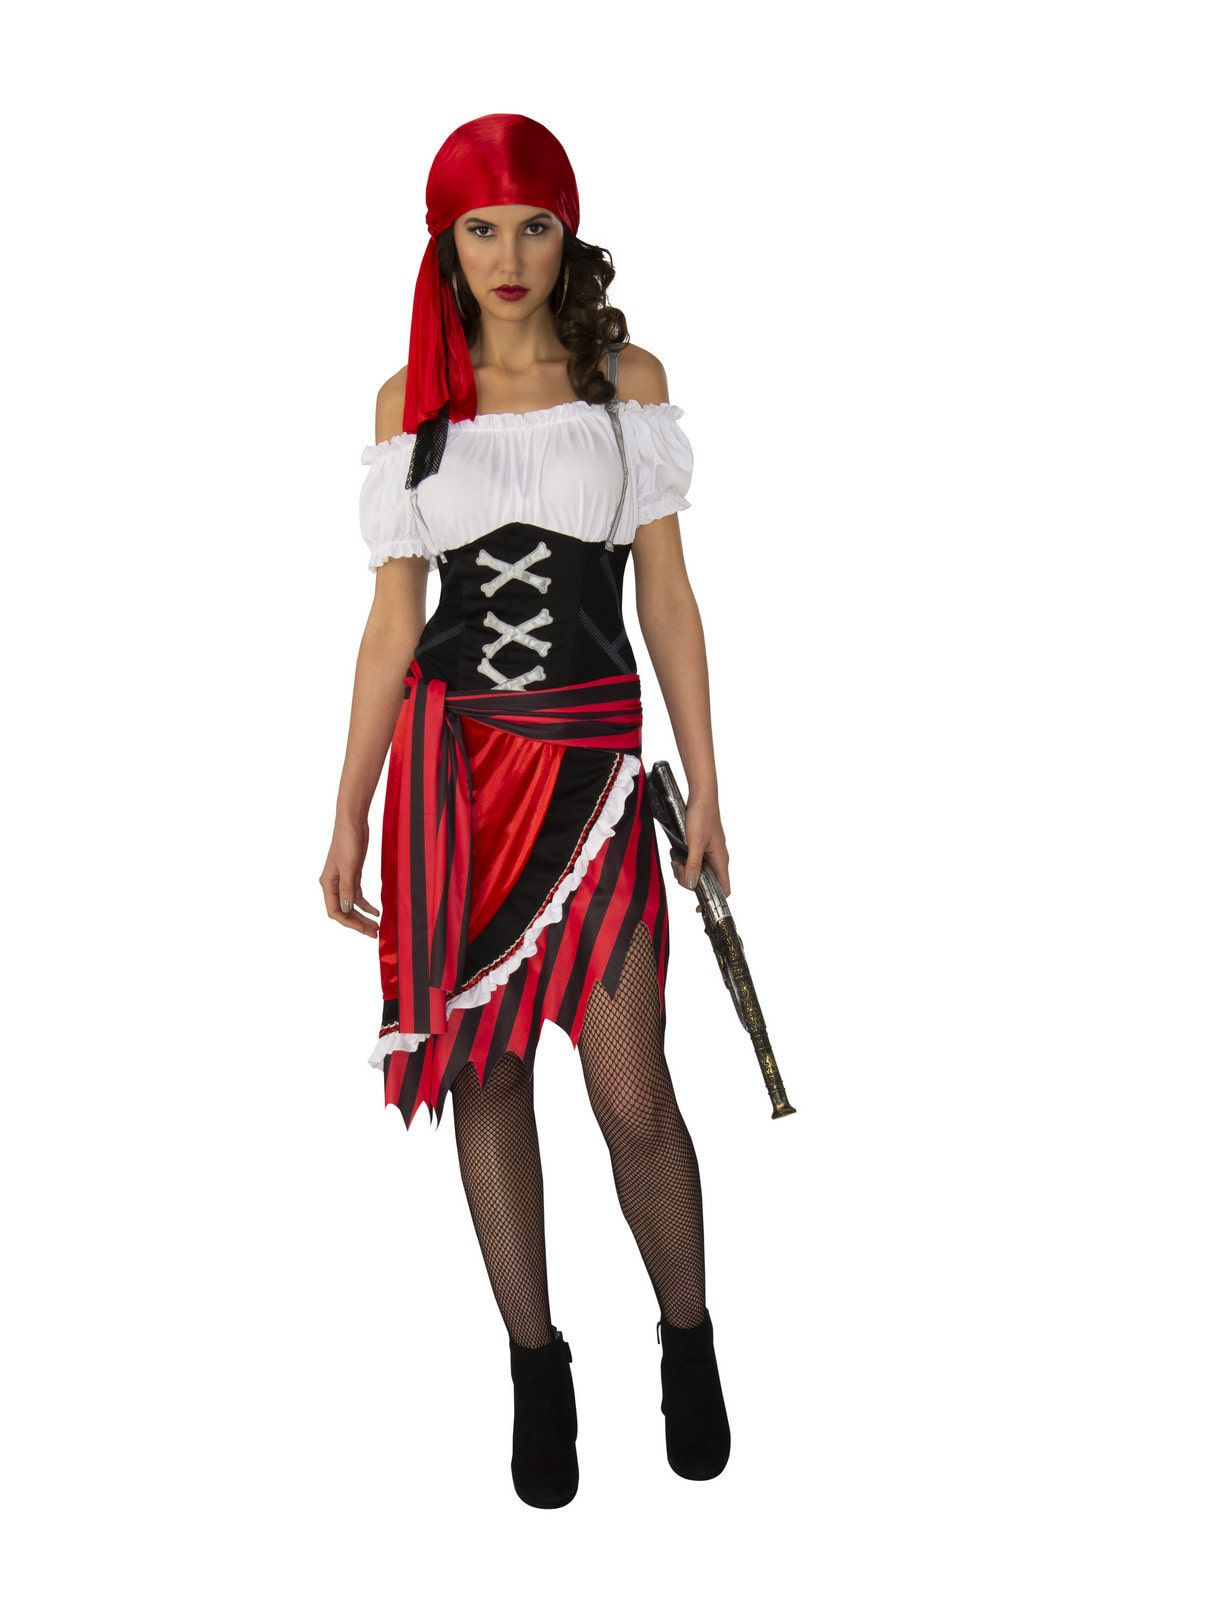 322c14c9b24 Adult Sexy Pirate Costume for Women - Womens Costumes for 2018 ...